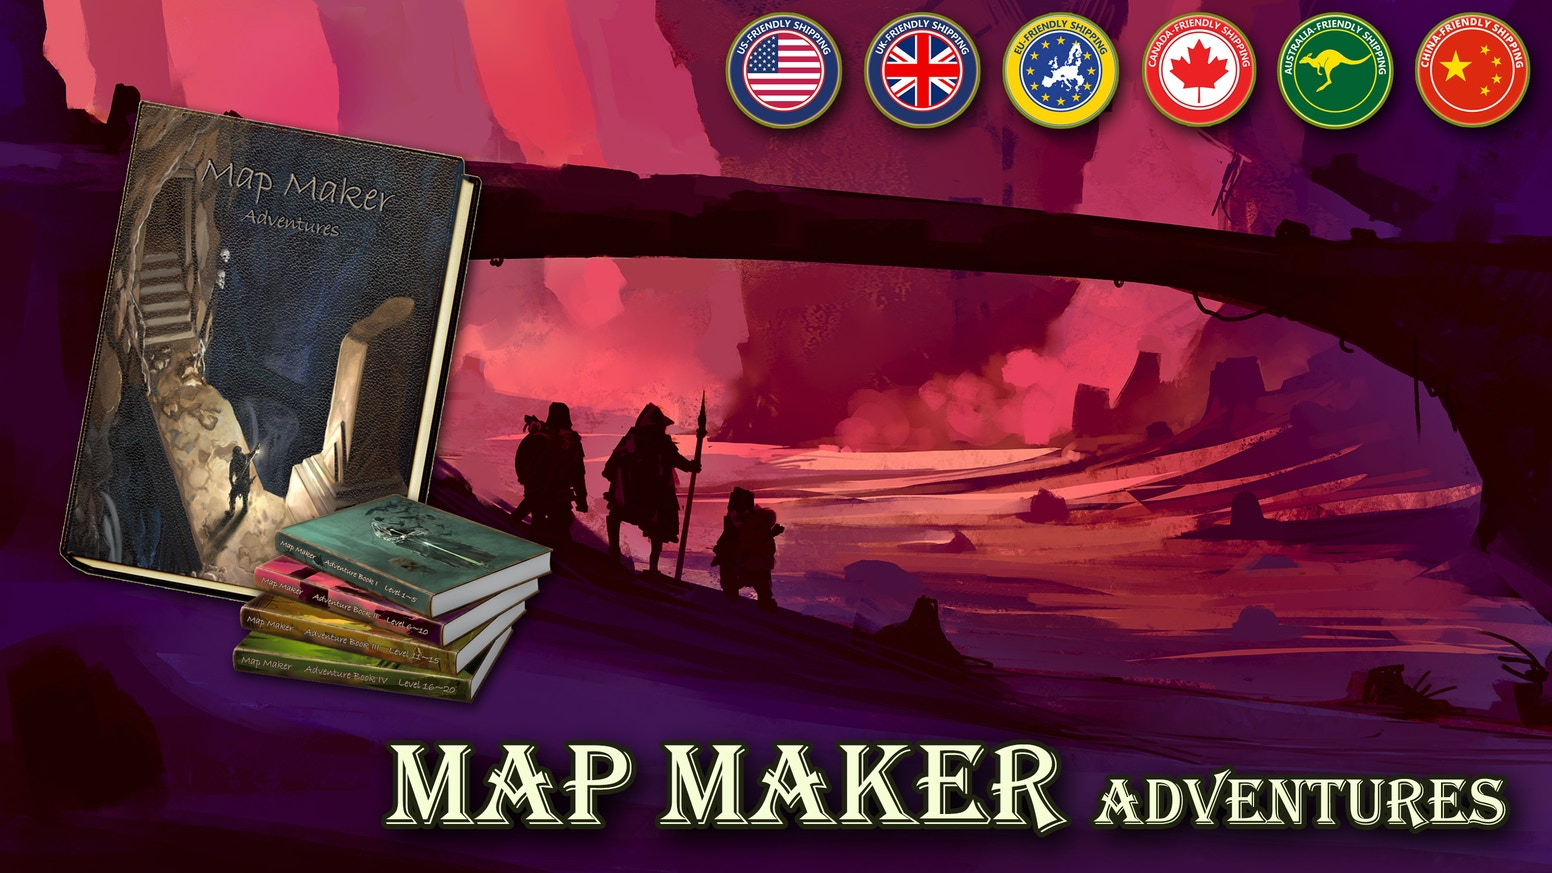 Map Maker Adventures - Dungeon Crawl RPG for 1-4 players by demon9t on